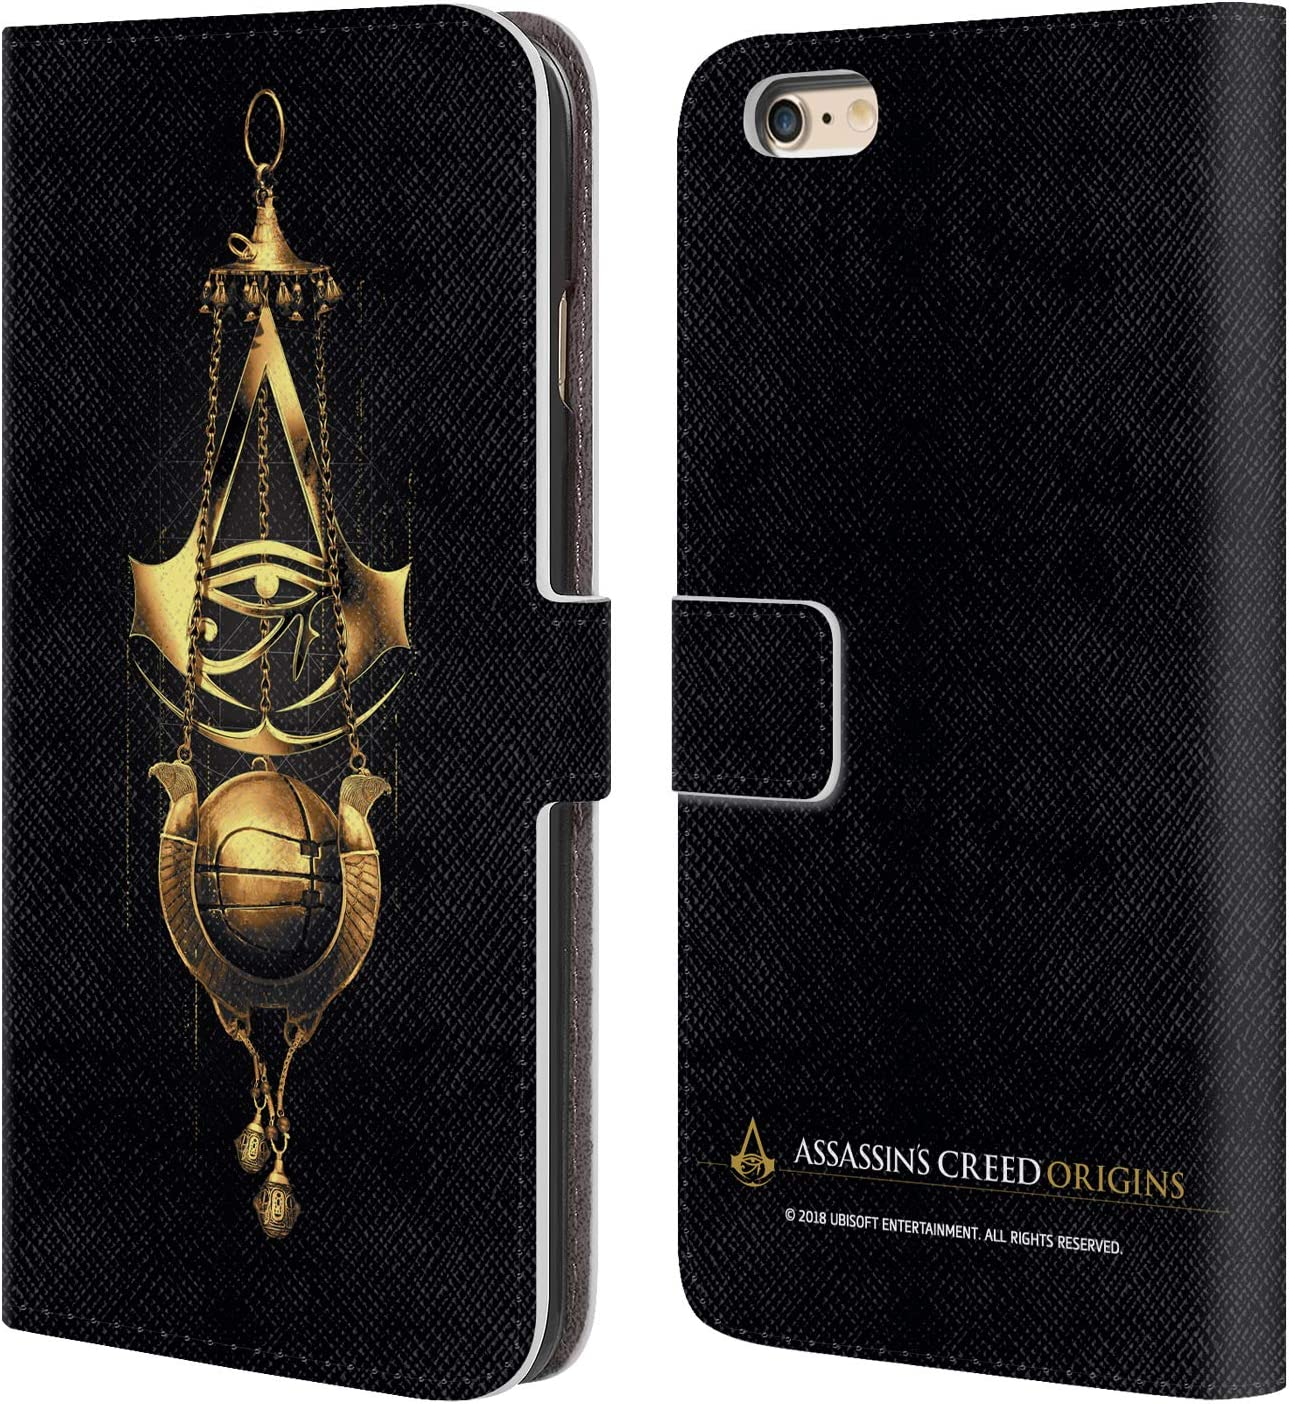 Head Case Designs Officially Licensed Assassin's Creed Piece of Eden Origins Crests Leather Book Wallet Case Cover Compatible with Apple iPhone 6 Plus/iPhone 6s Plus